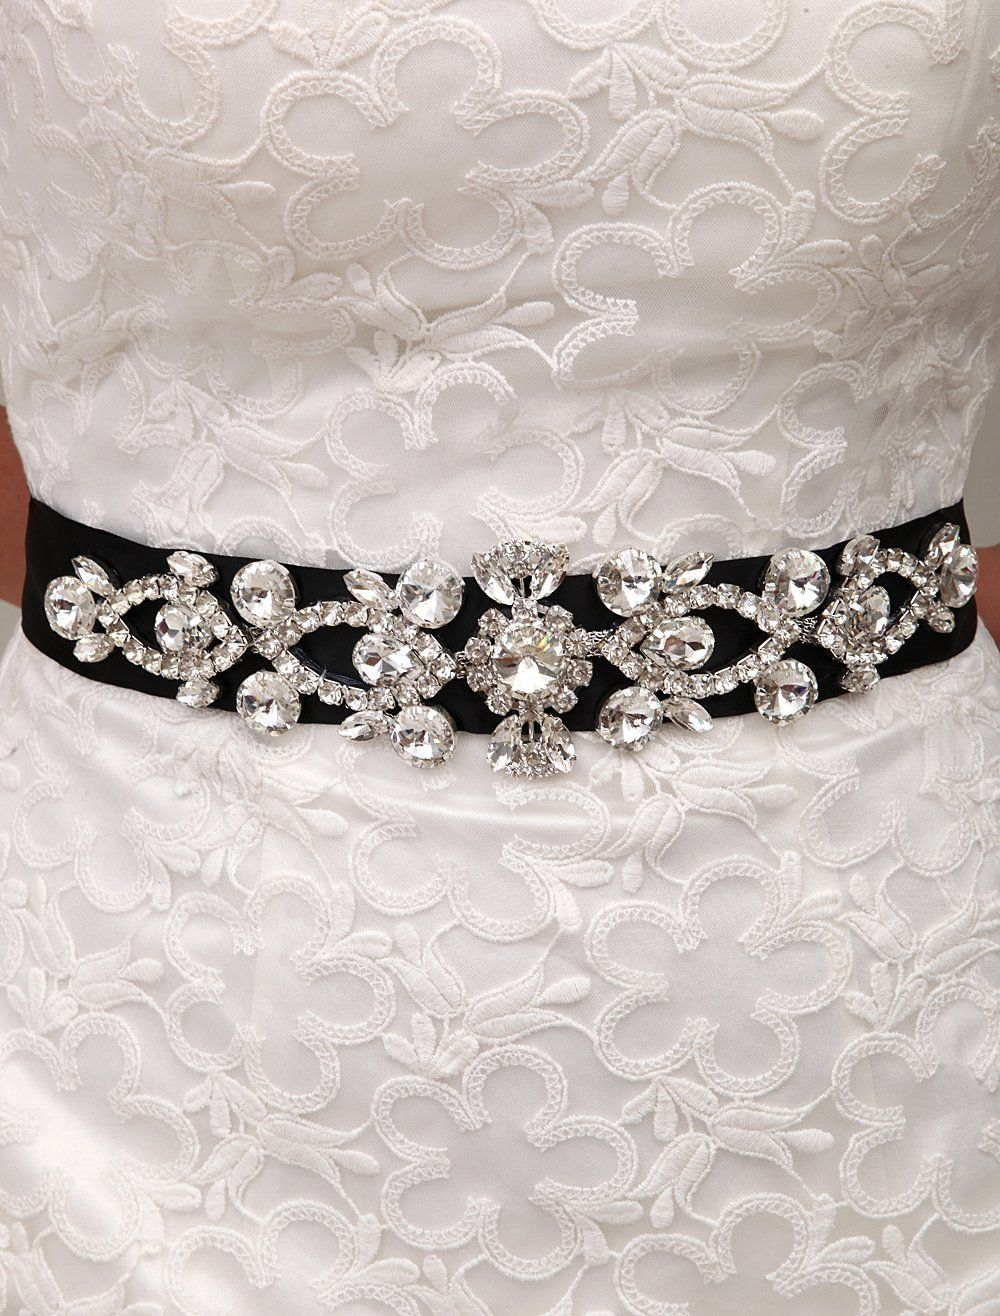 M4u Bridal Amazing Rhinestone Wedding Sash/waistband for Wedding and Party Black at Amazon Women's Clothing store: